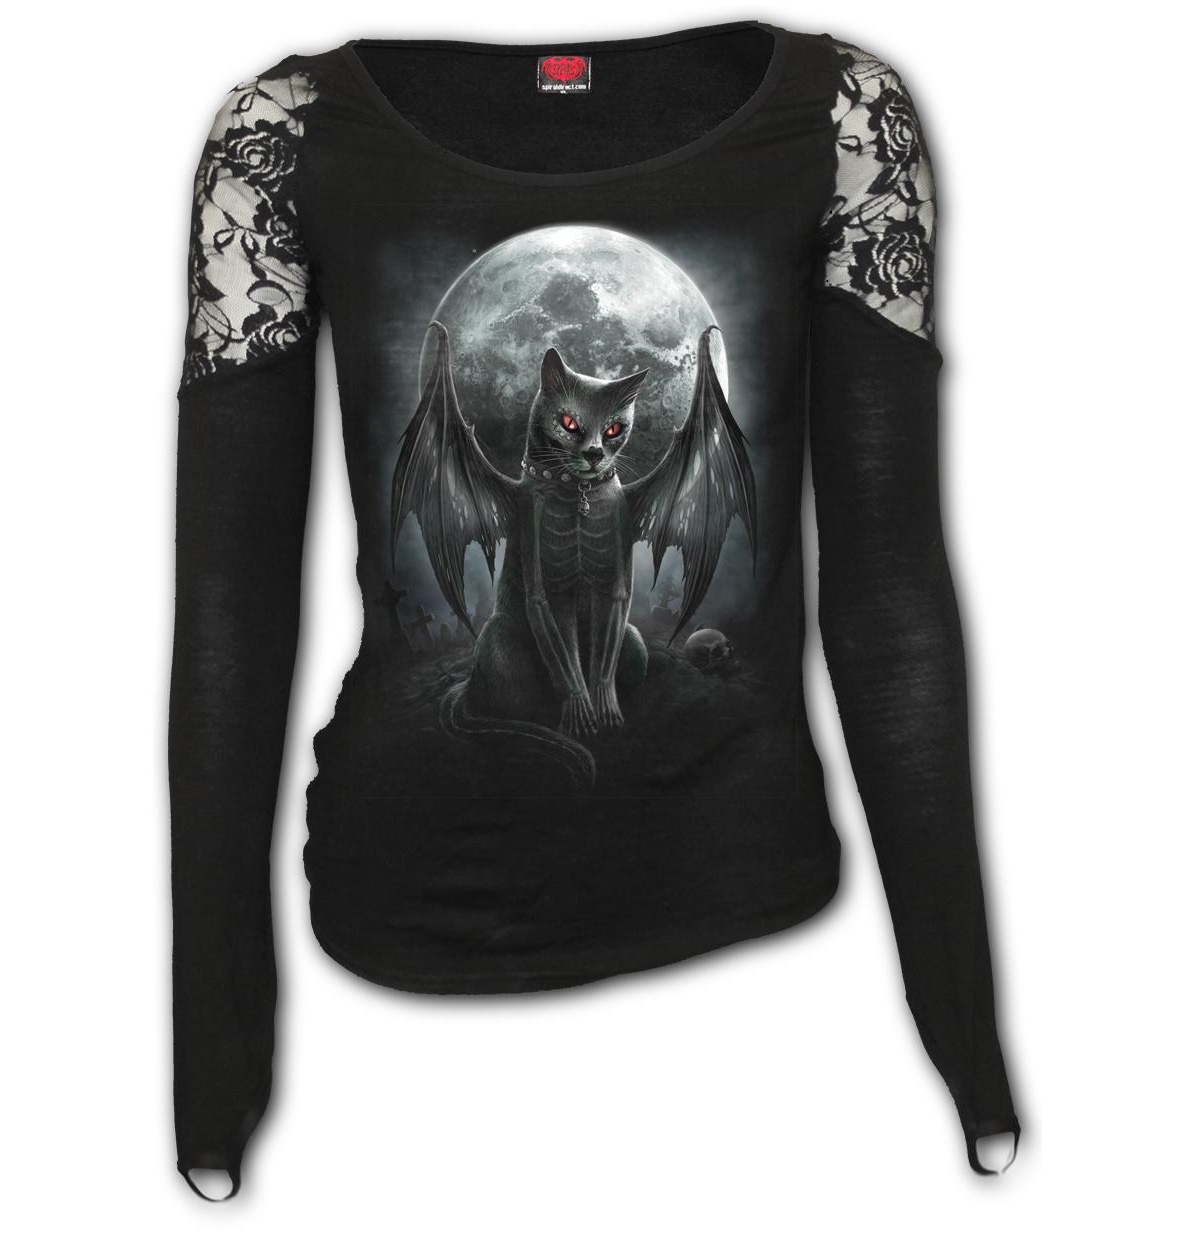 Spiral-Direct-Ladies-Gothic-Black-Top-Vampire-VAMP-CAT-L-Sleeve-Lace-All-Sizes thumbnail 11